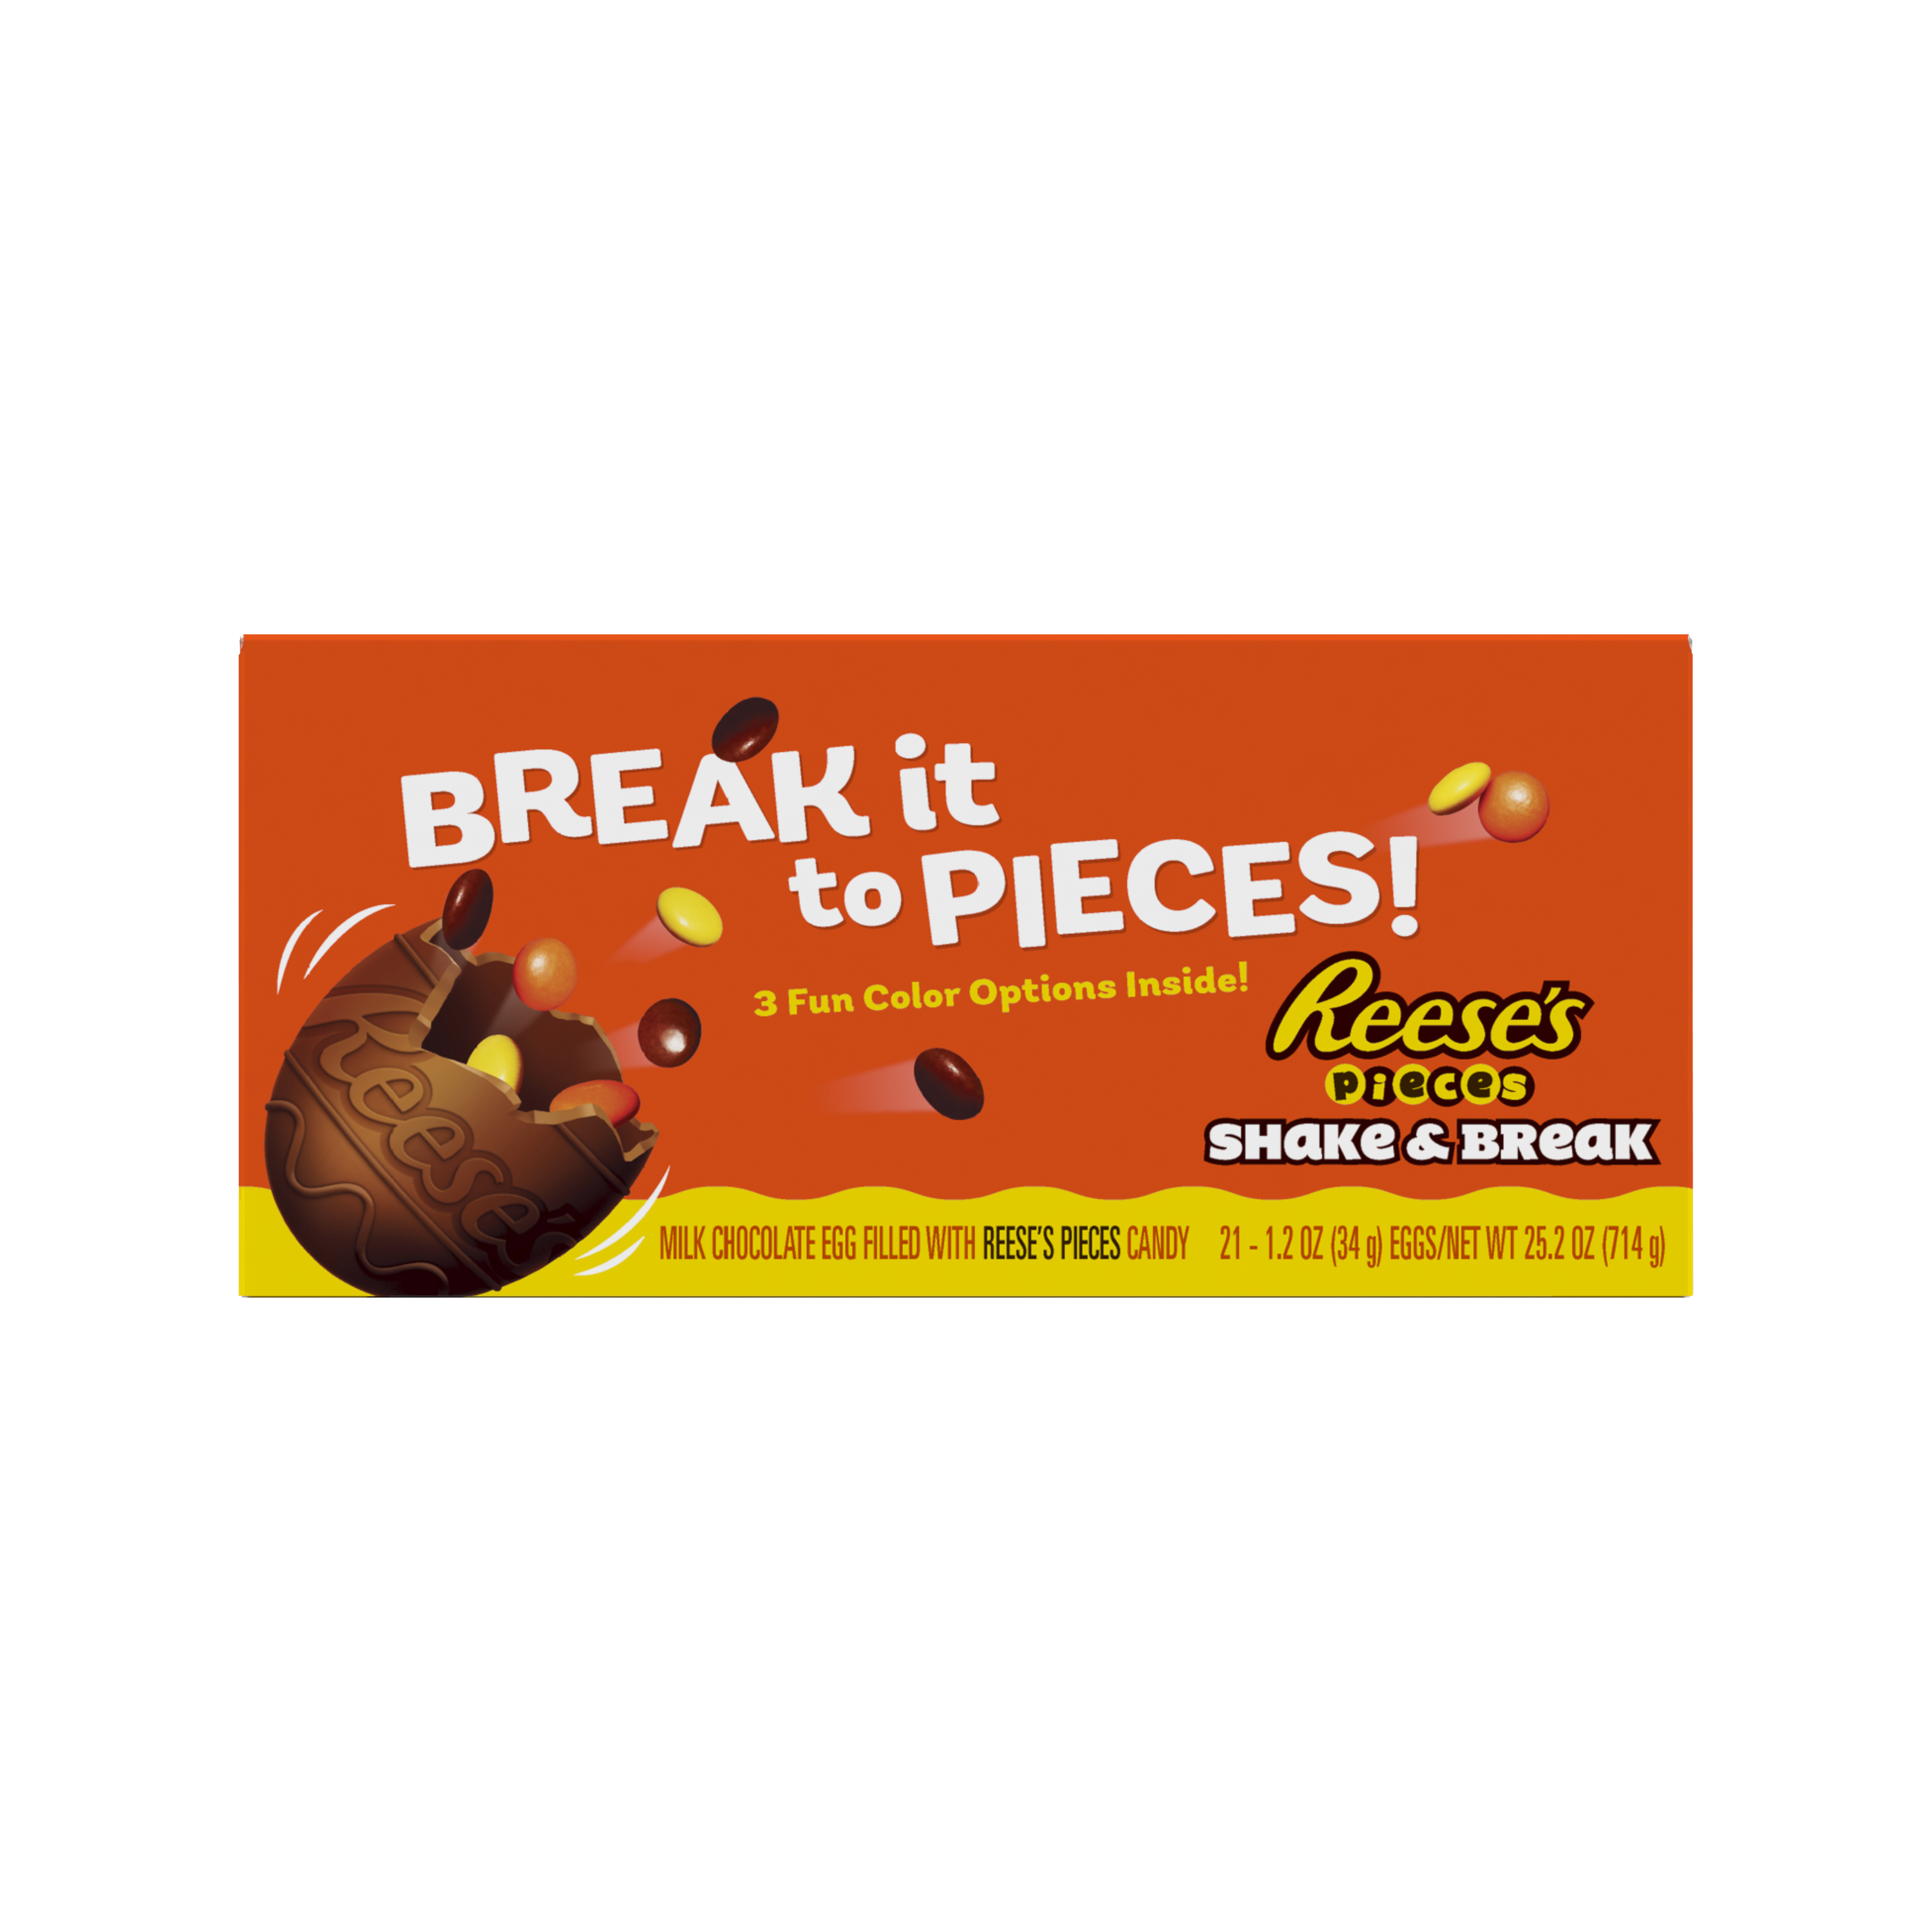 REESE'S PIECES SHAKE & BREAK Milk Chocolate Peanut Butter Eggs, 1.2 oz box, 21 eggs - Front of Package